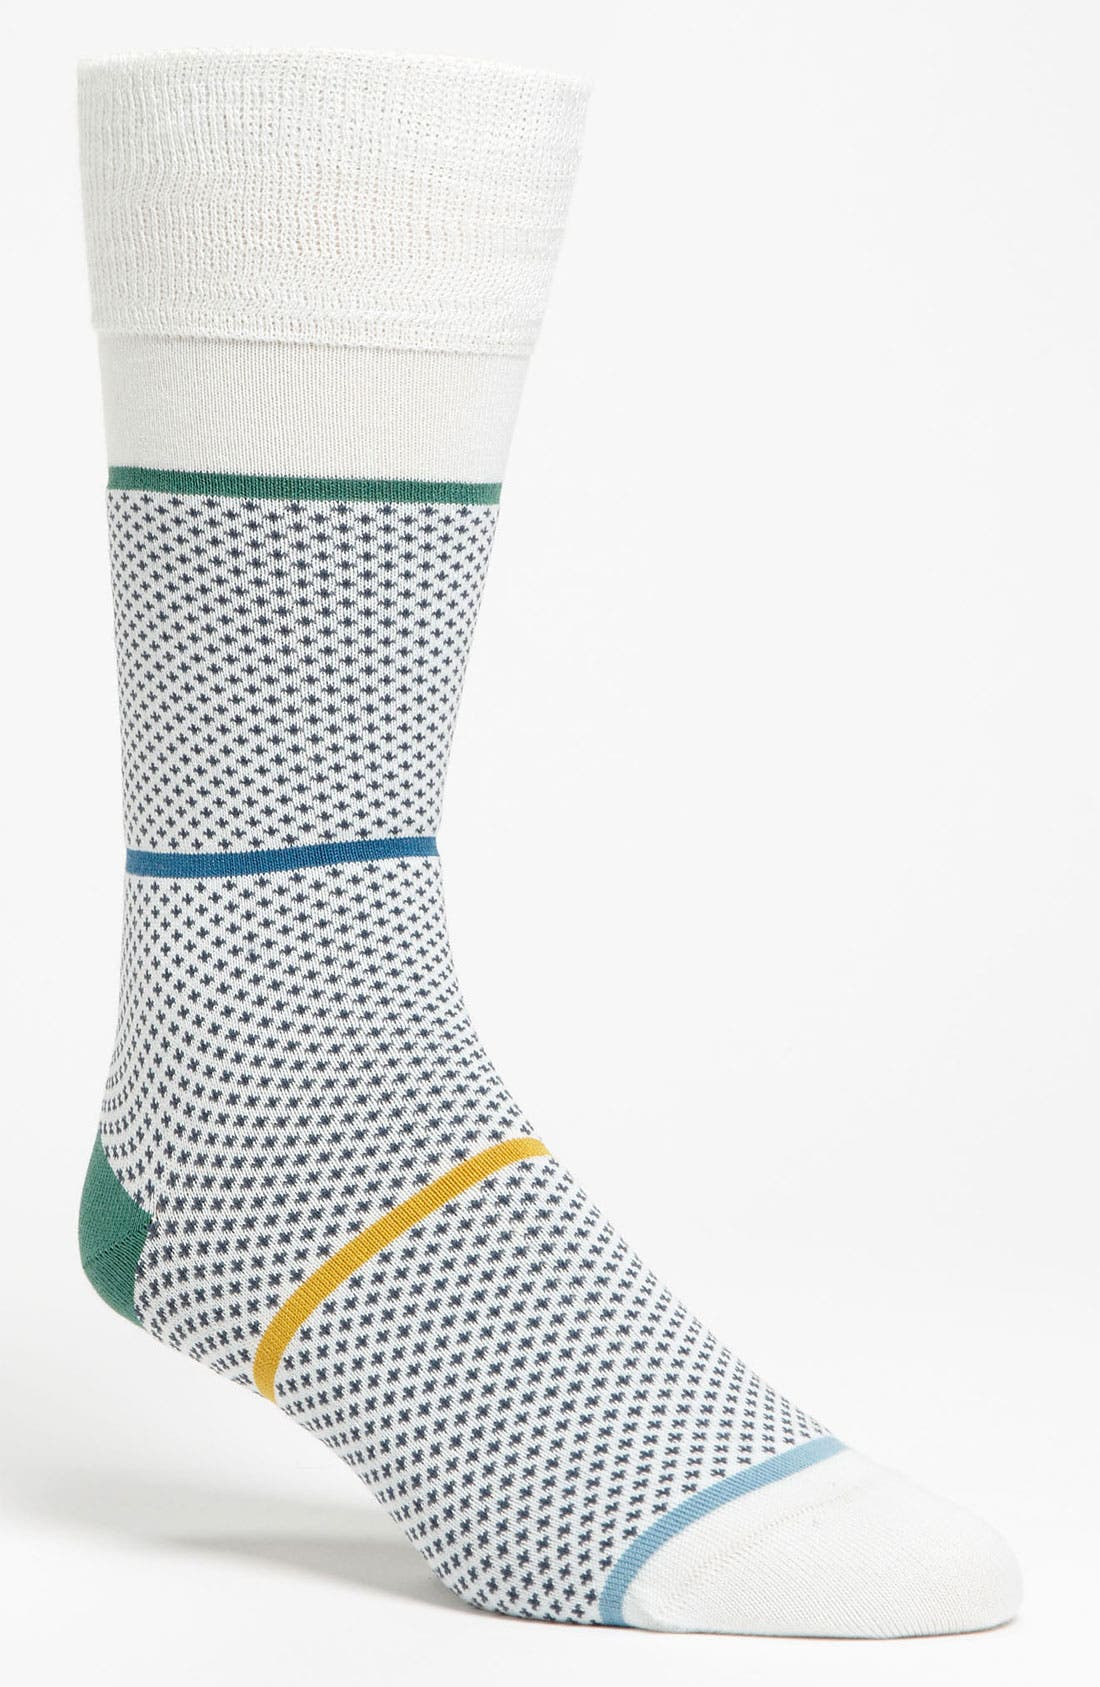 Alternate Image 1 Selected - Paul Smith Accessories Star Socks